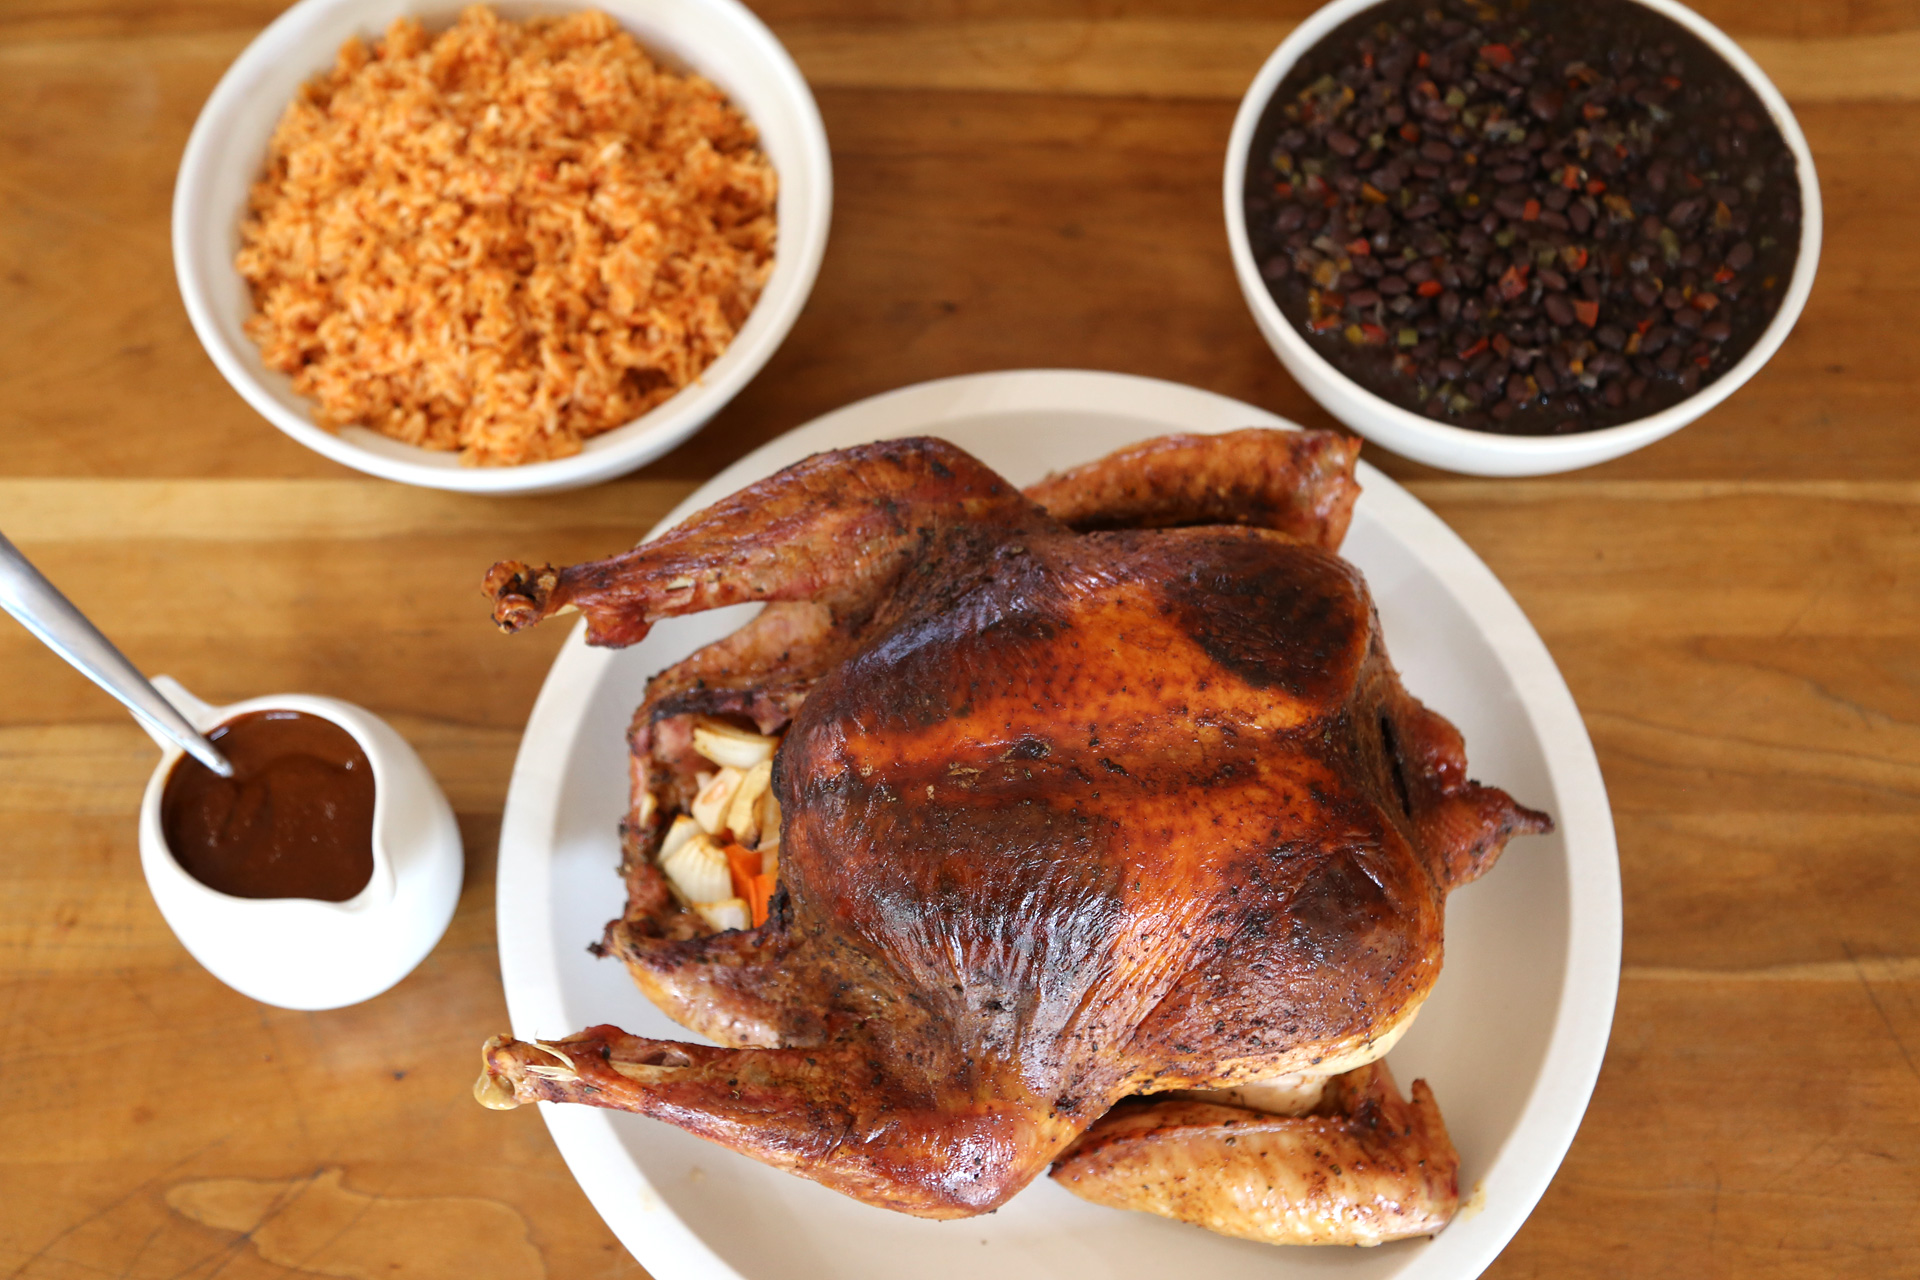 Chile-Rubbed Roast Turkey served with Savory Black Beans, Mexican Rice and Mole Gravy